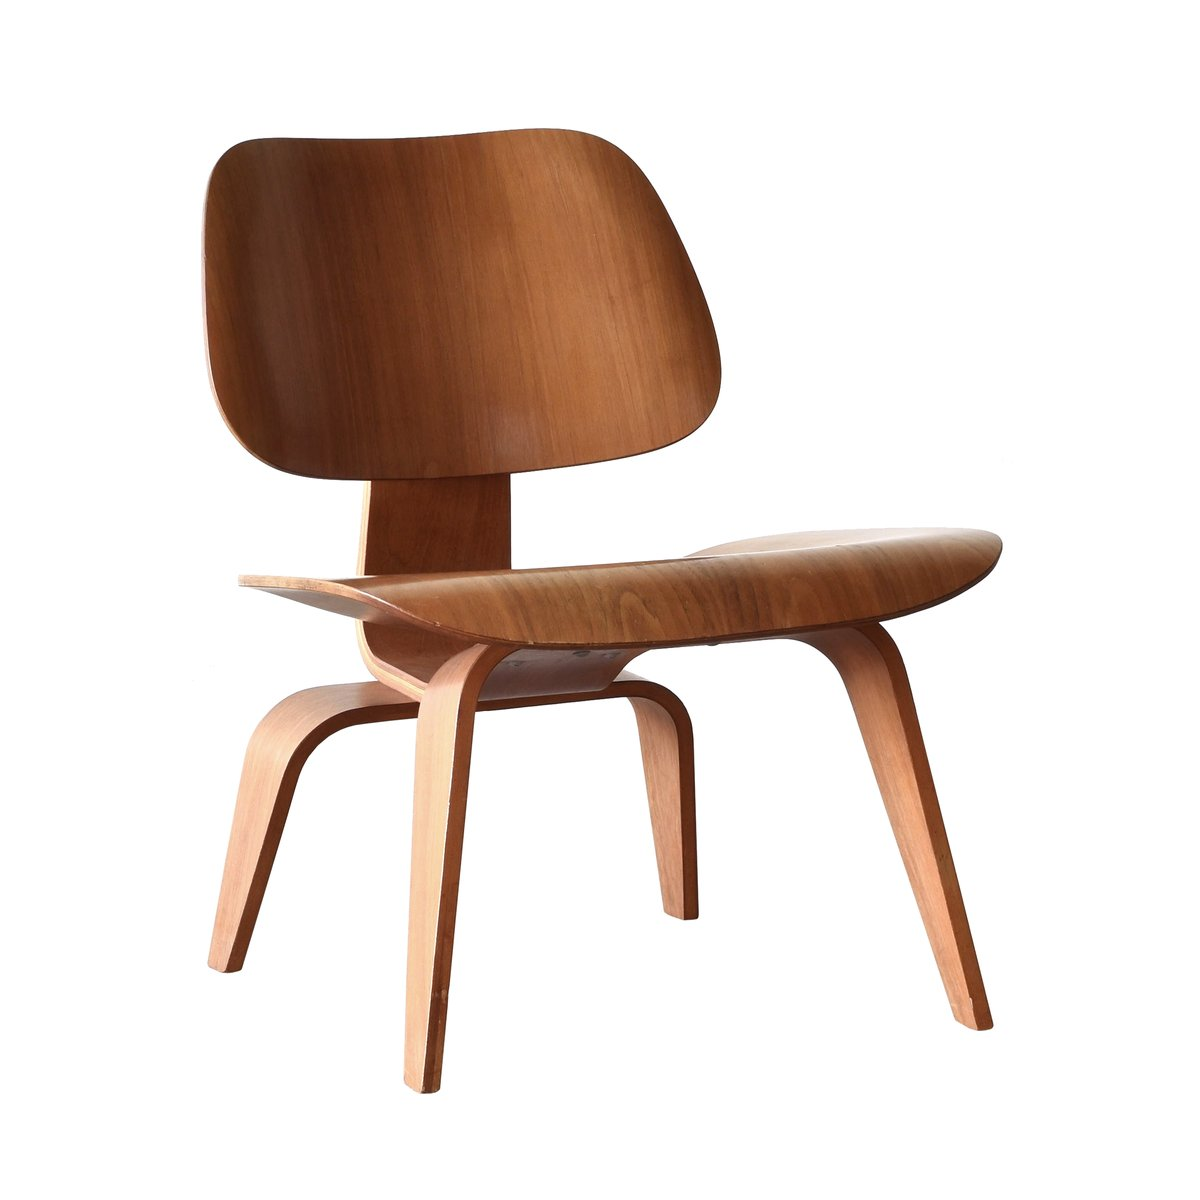 Charles And Ray Eames Chair American Lcw Walnut Lounge Chair By Charles And Ray Eames